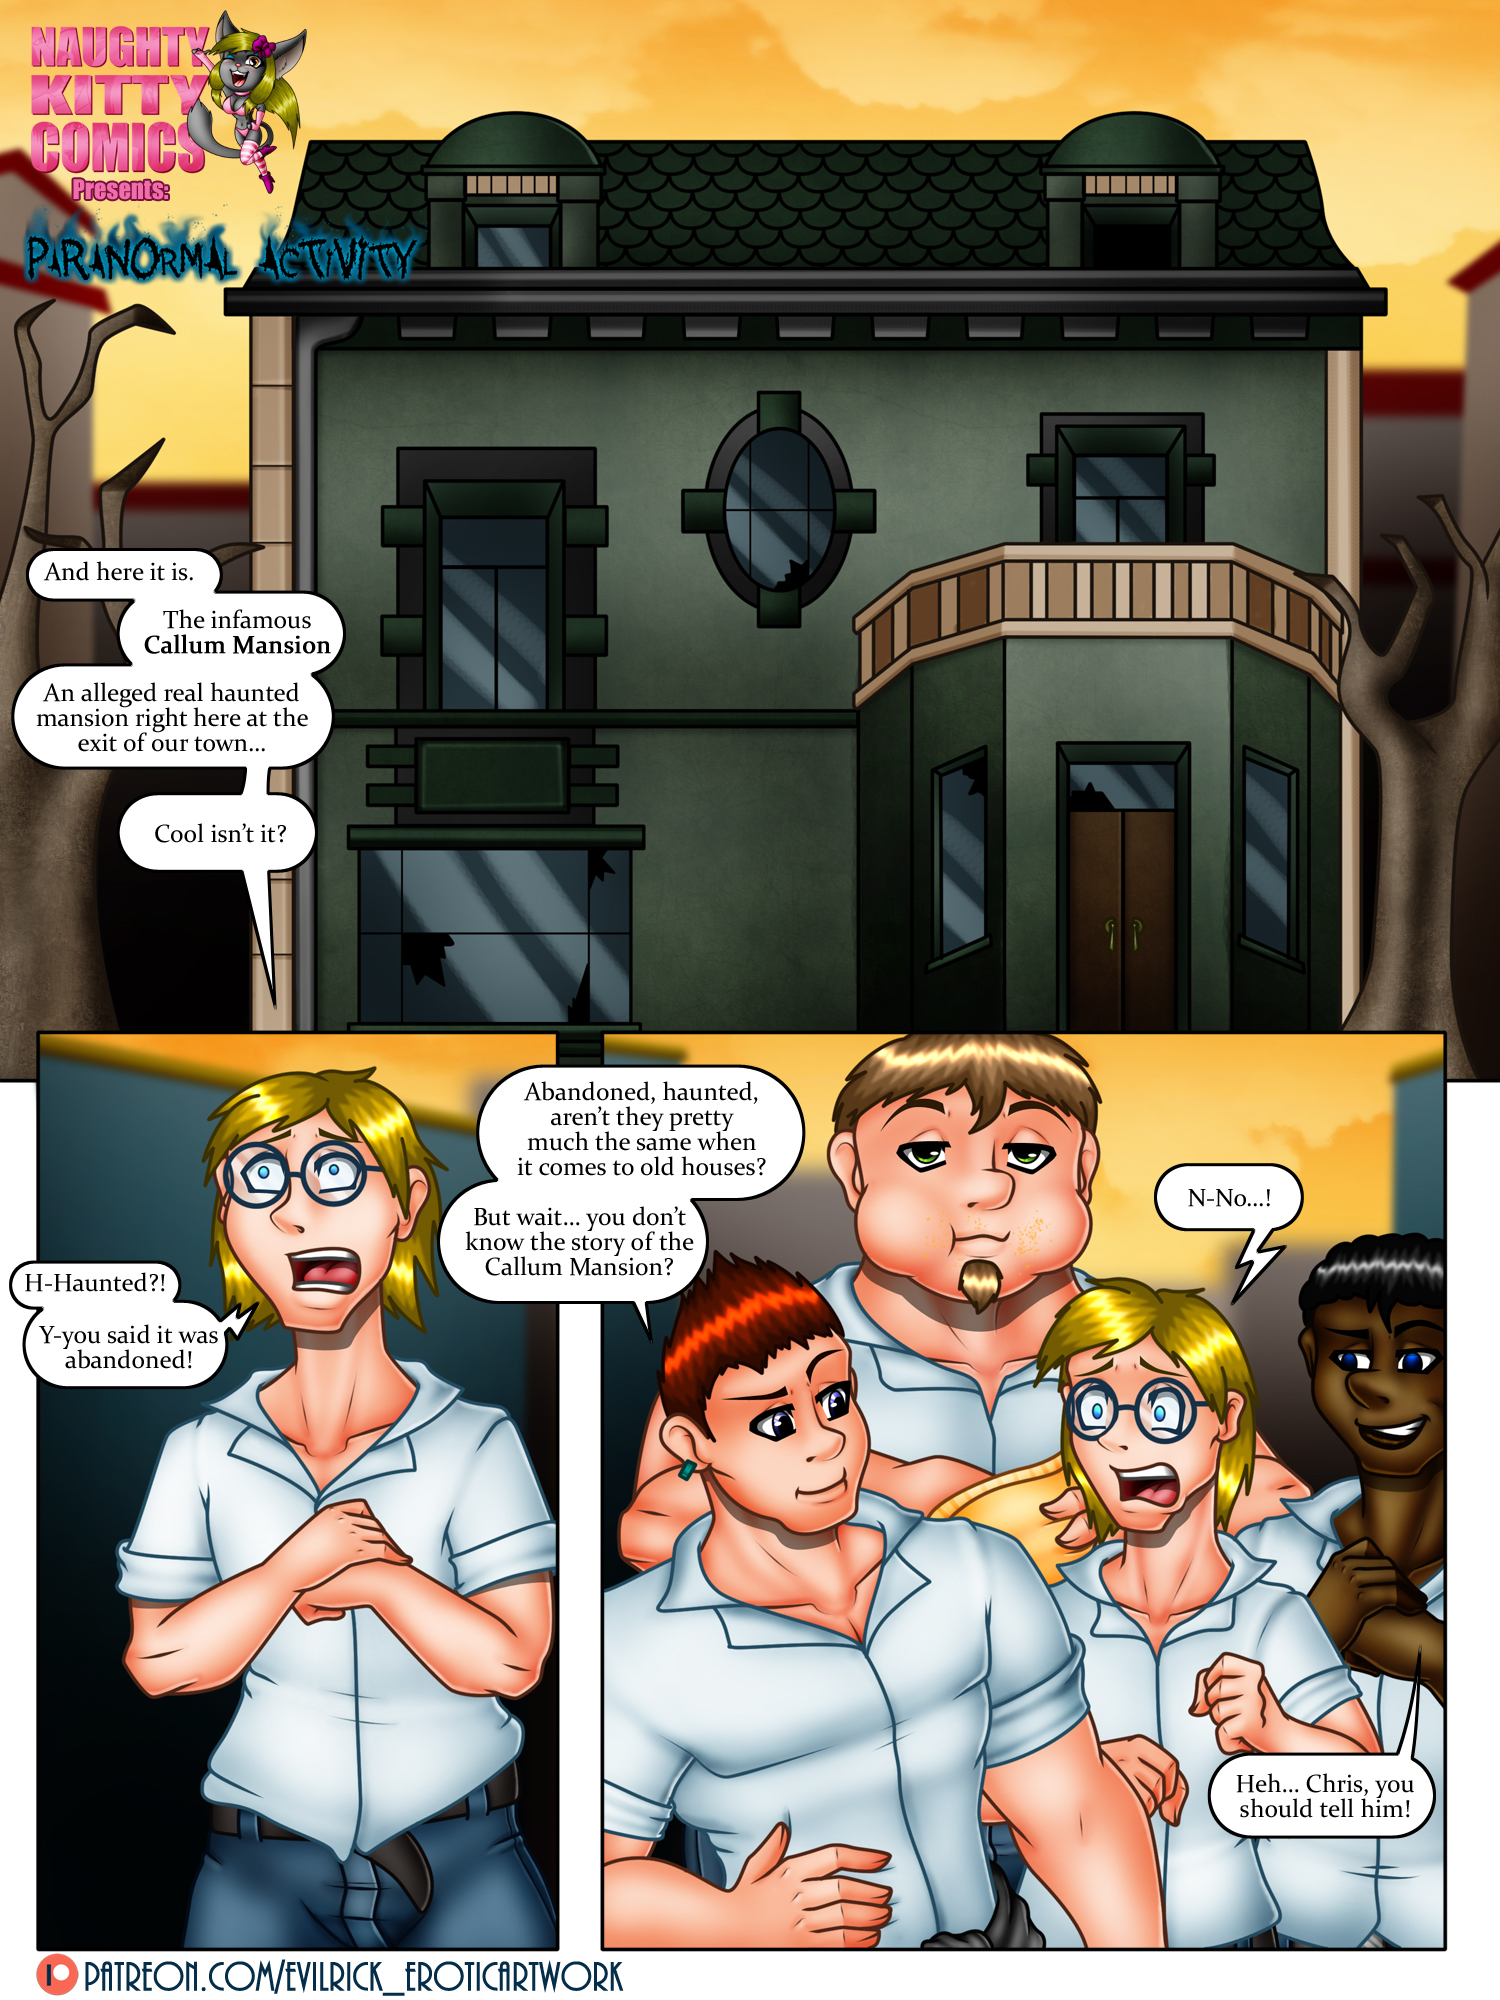 Paranormal Activity_Page 1